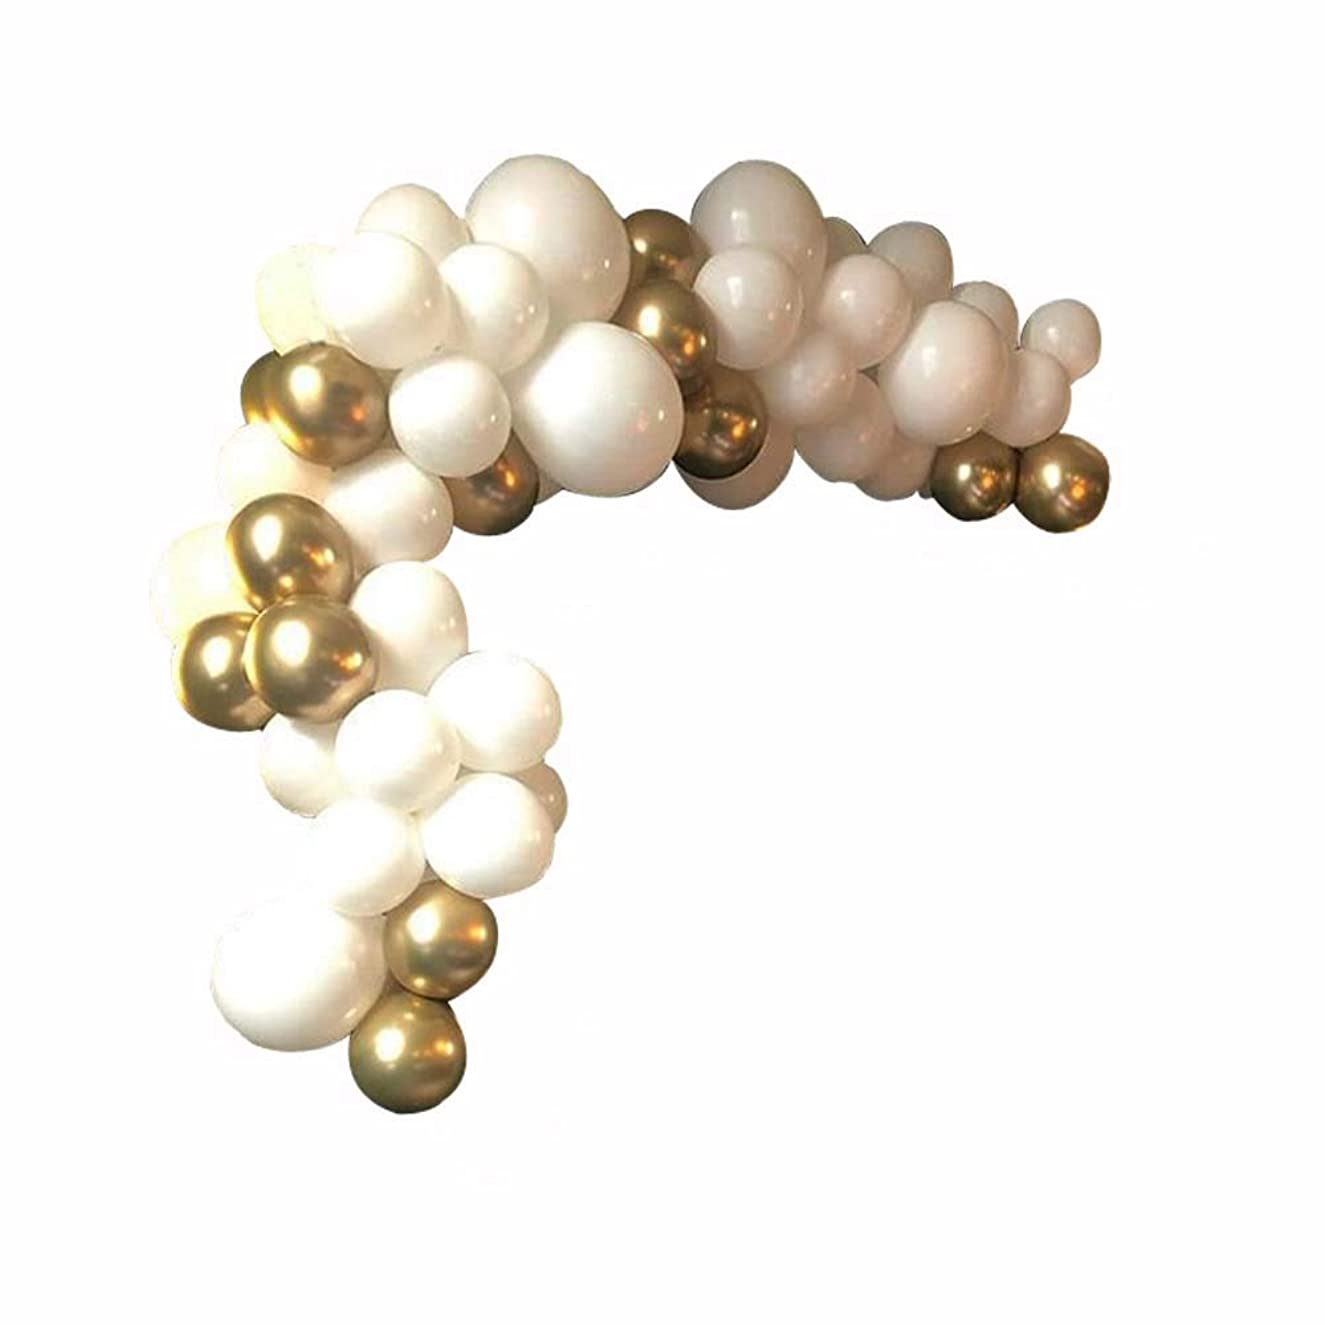 52 Packs DIY Balloons Garland Arch Kit with White and Gold Chrome Shiny Metallic Latex Balloons- Perferct for Graduation Birthday Decorations,Bridal Baby Shower Engagement Wedding Par